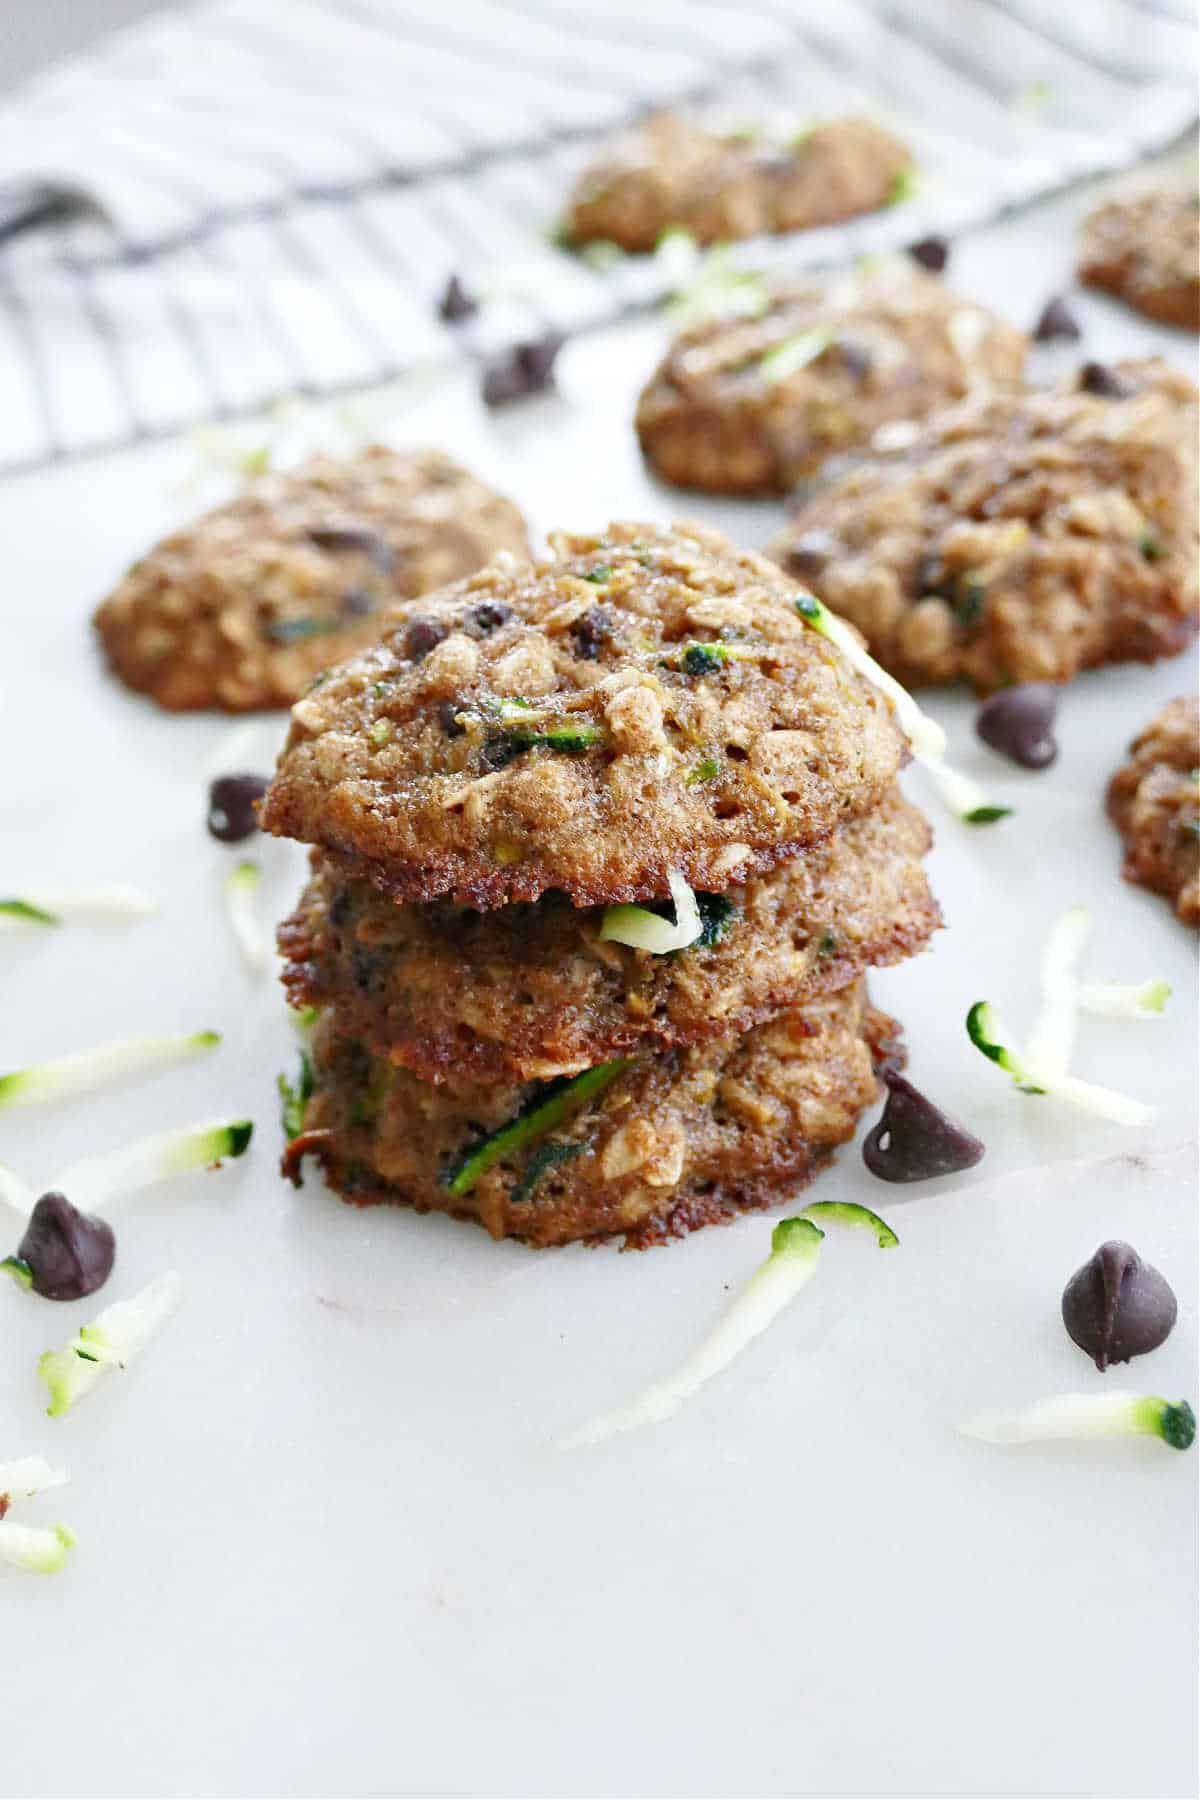 three zucchini chocolate chip cookies stacked on top of each other on a counter